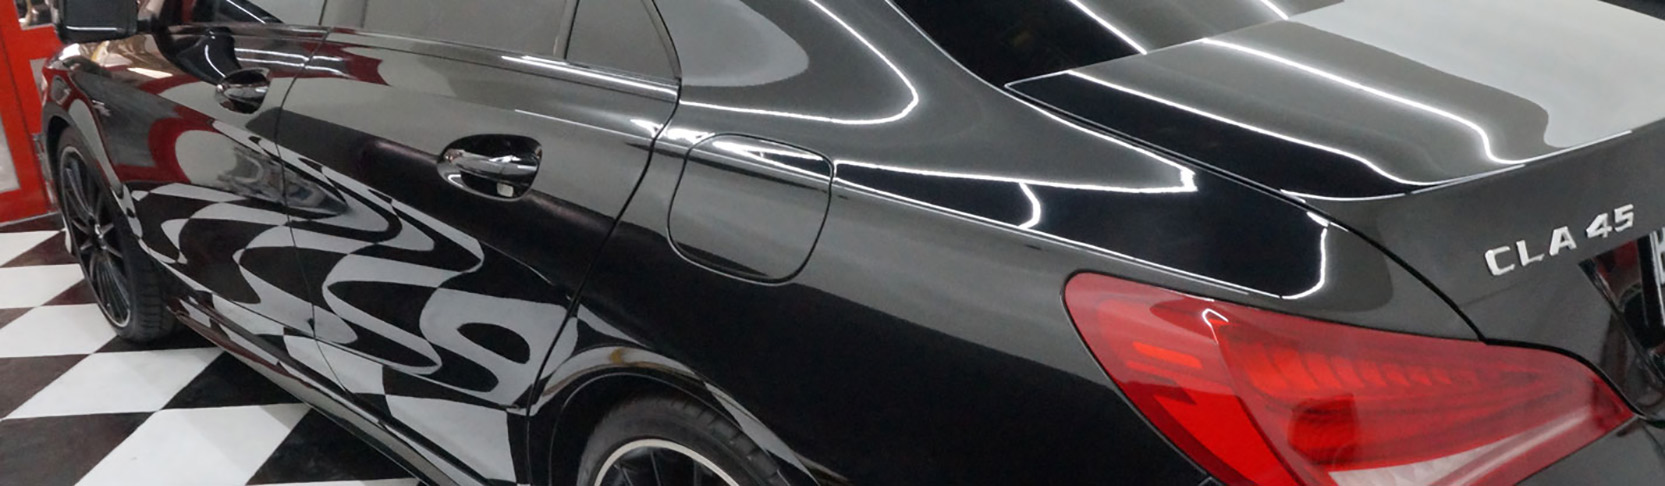 CS-II Paint Protection Swirl Mark on Car Body